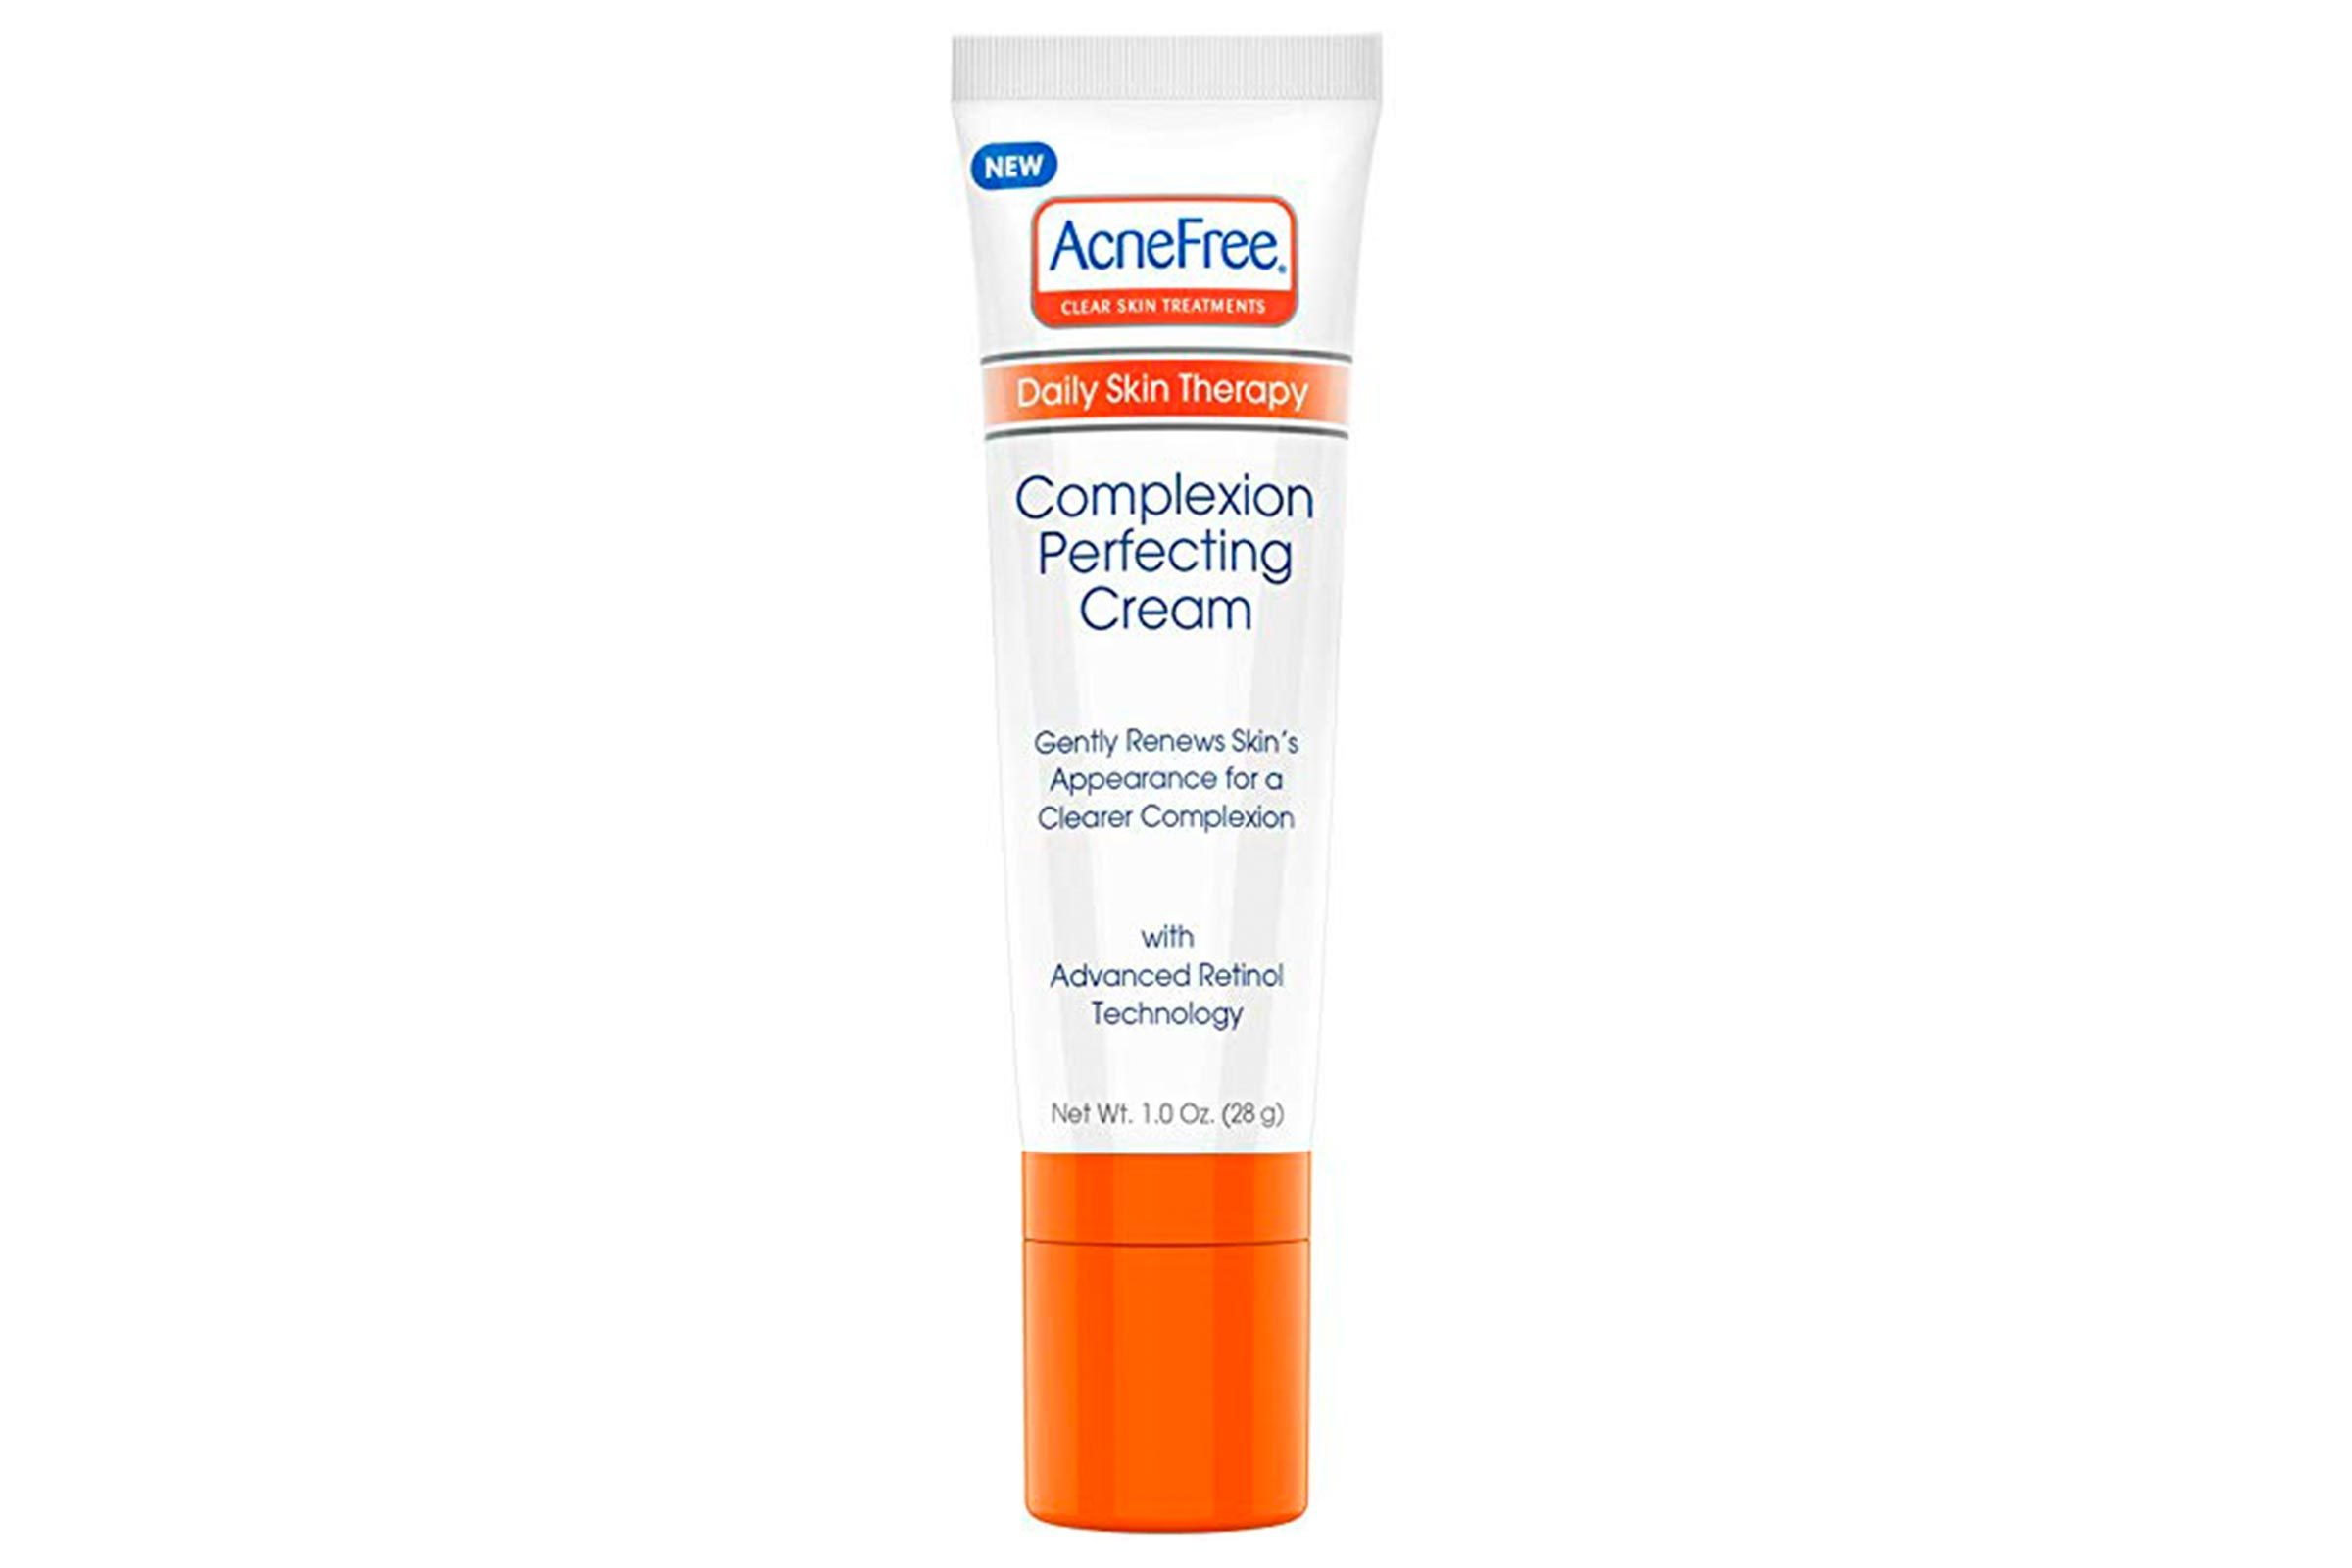 AcneFree Complexion Perfecting Cream